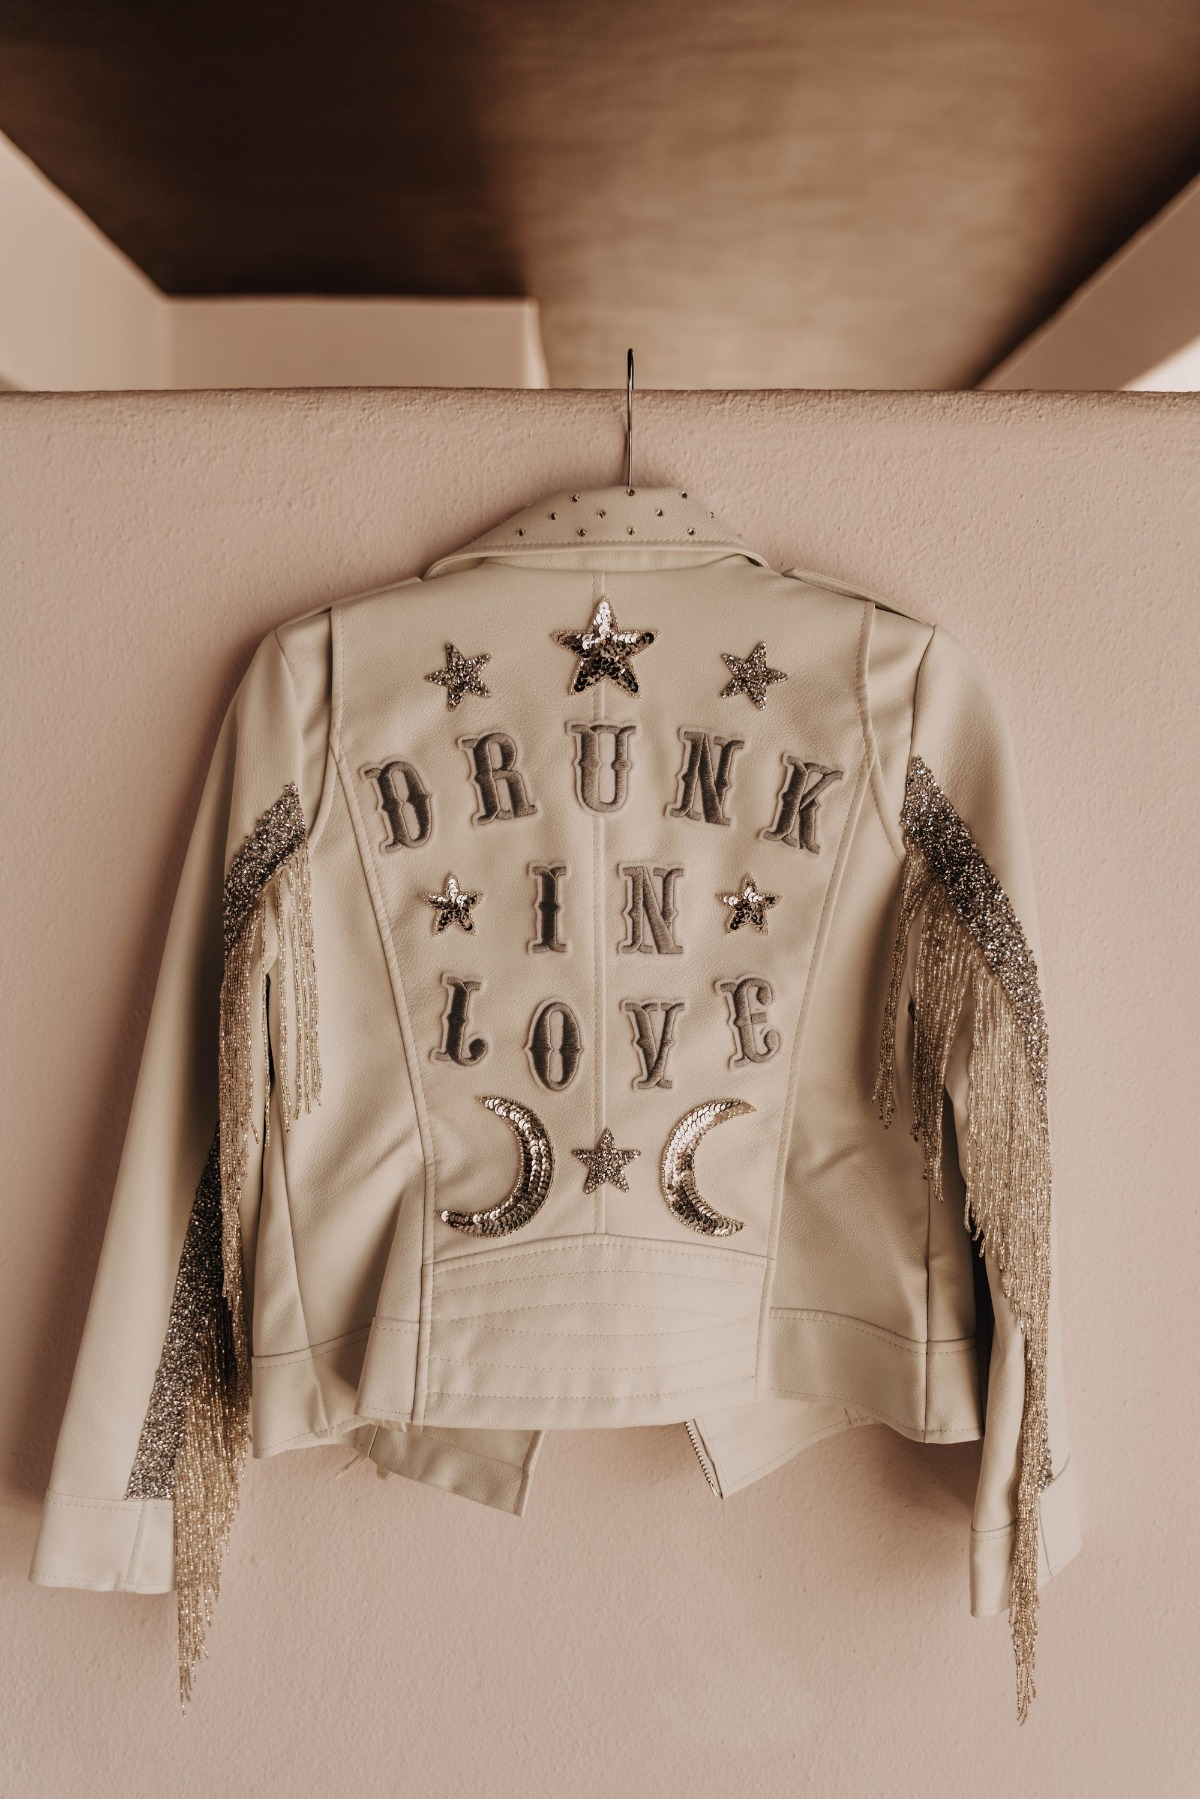 Drunk in Love wedding jacket with silver fringe by Ally Jacqueline